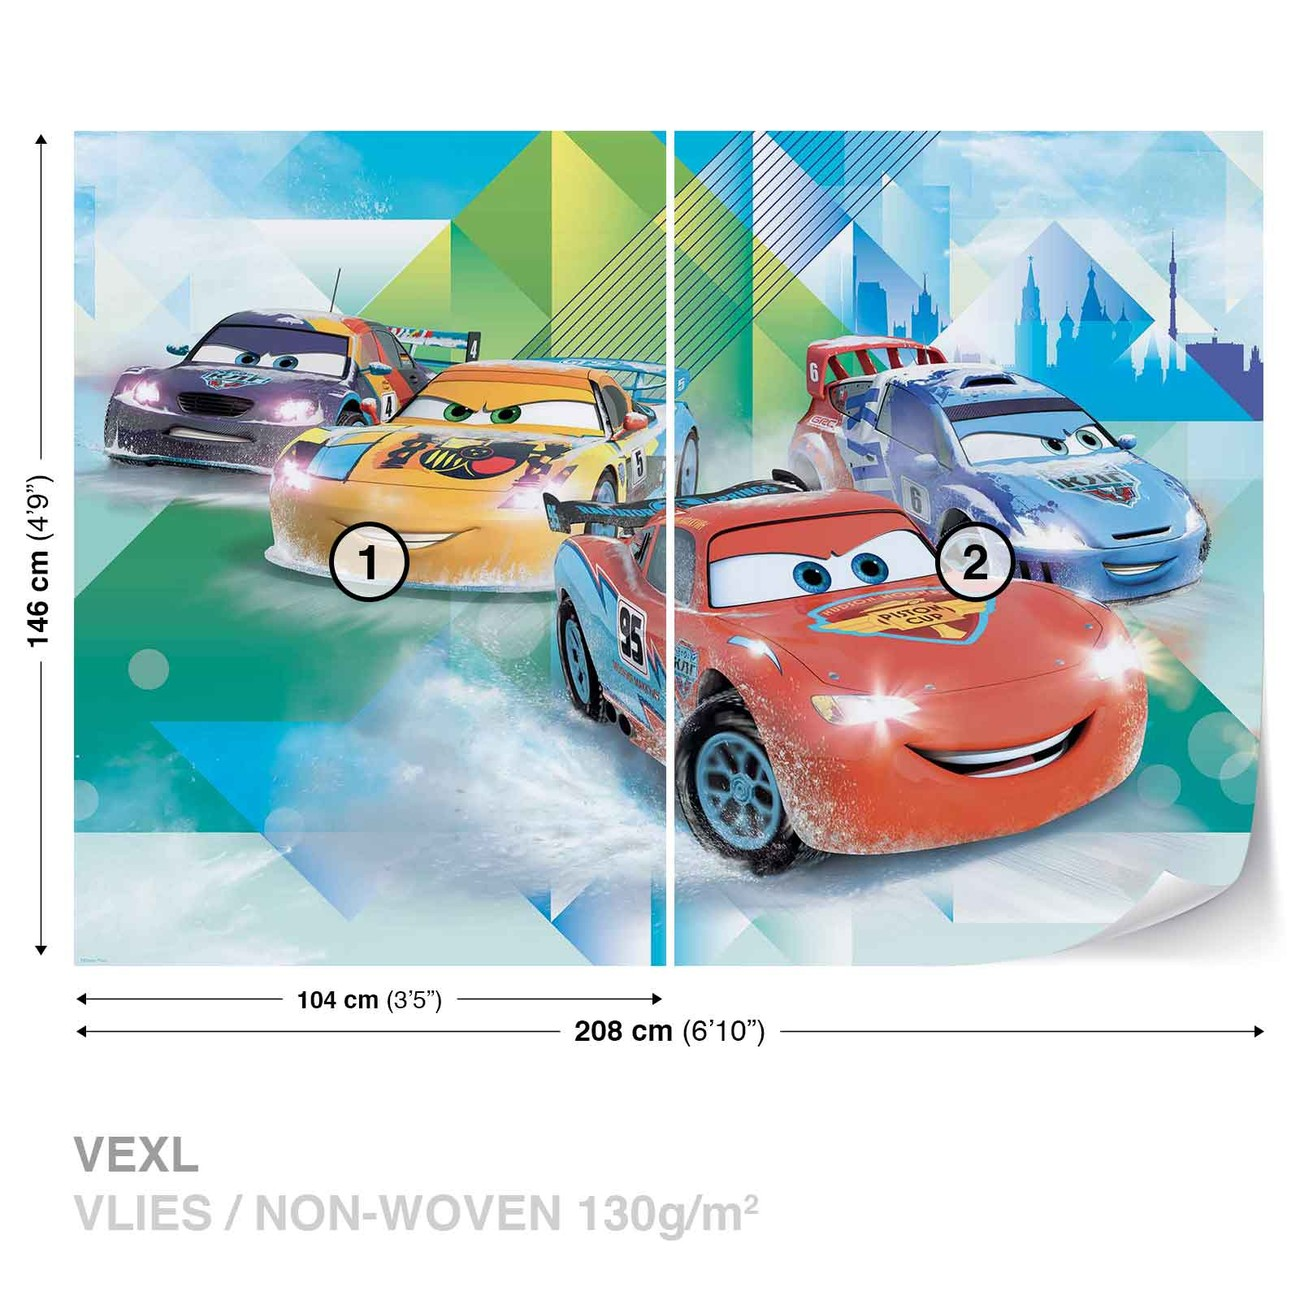 Disney cars lightning mcqueen camino wall paper mural for Disney cars wall mural uk